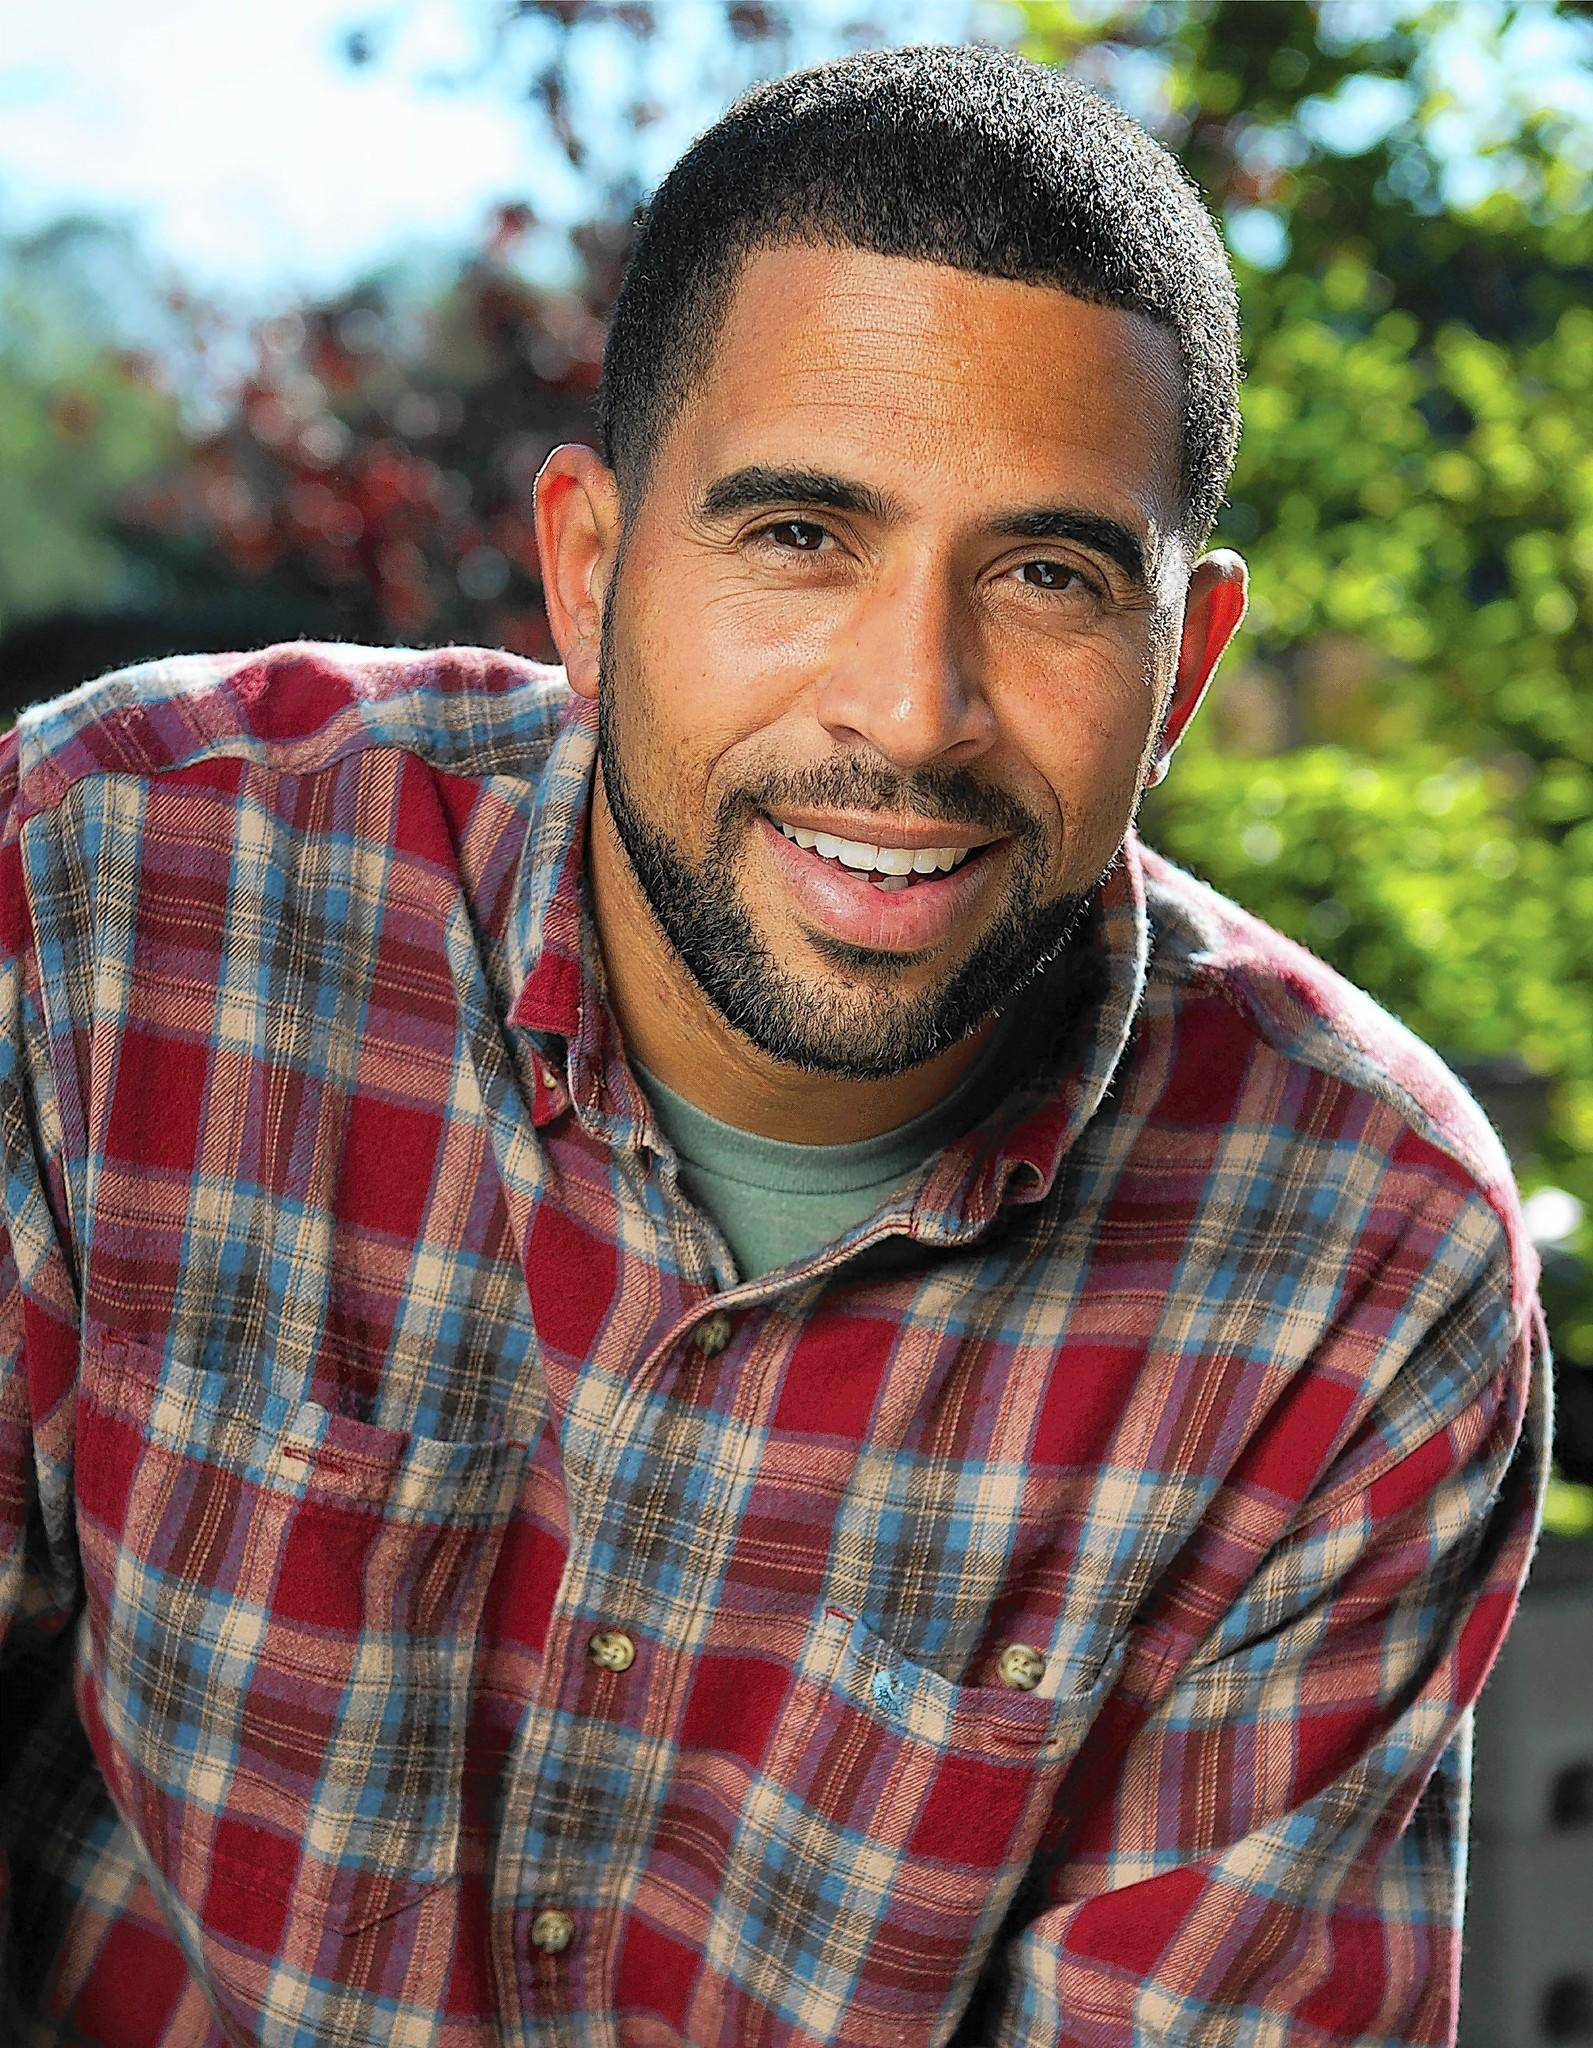 Celebrity landscaper Ahmed Hassan will share his landscaping expertise at the Central Florida Home & Garden Show at the Orange County Convention Center.